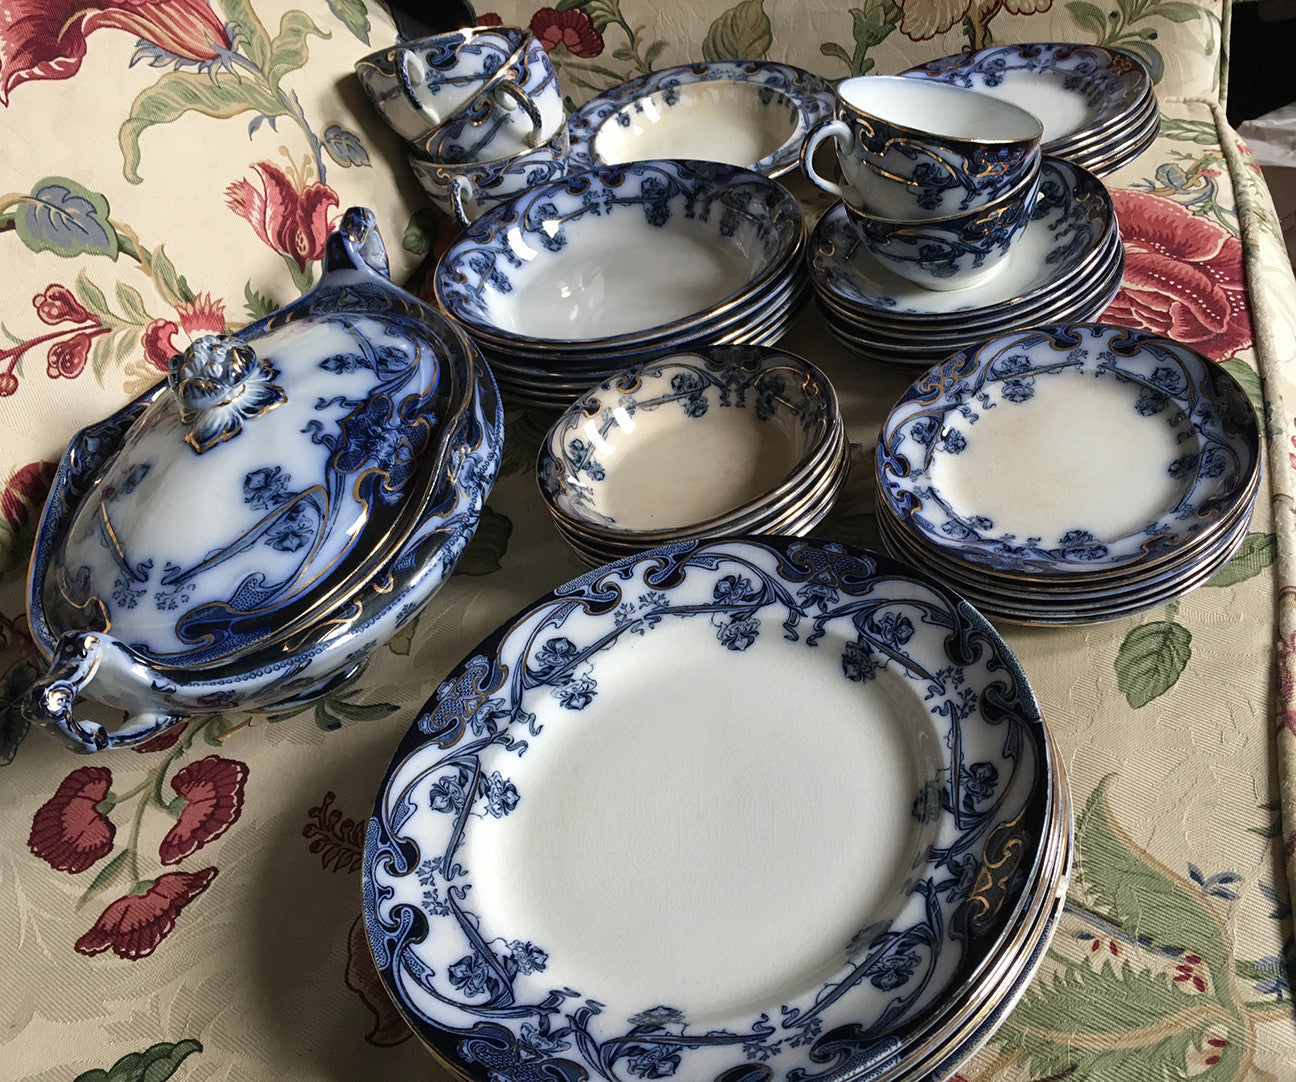 SOLD Art Nouveau Flow Blue English Staffordshire Iris Pattern Dinnerware , 43 Items